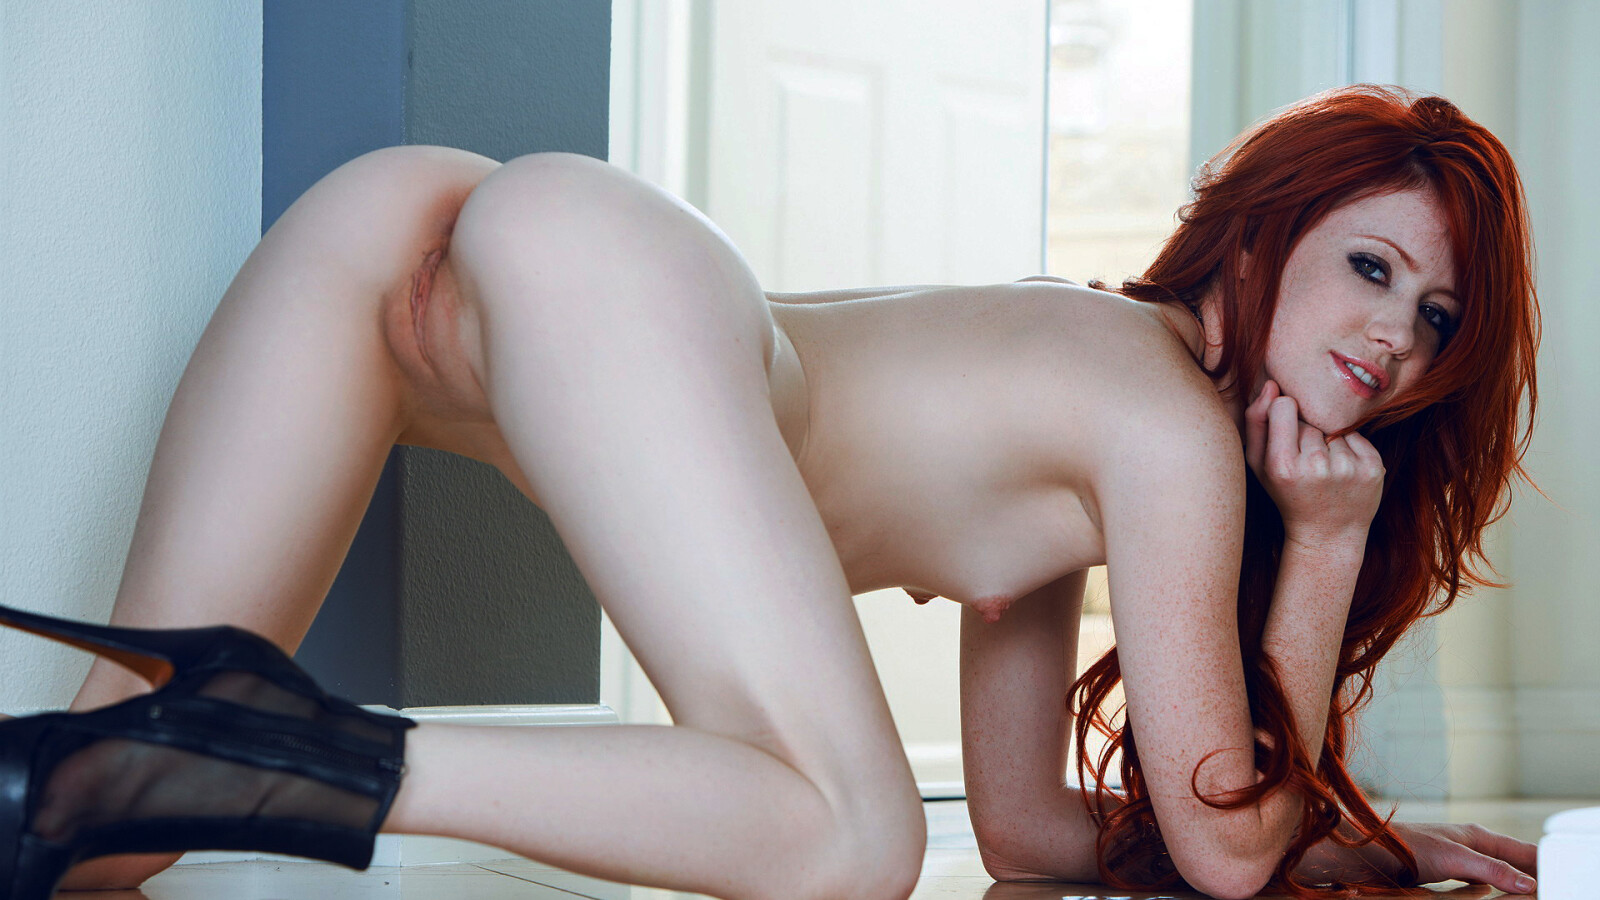 Nude Bend Over Doggy Style Shaved Pussy Elle Alexandra Red Hair Teen Girl Wallpaper #1982